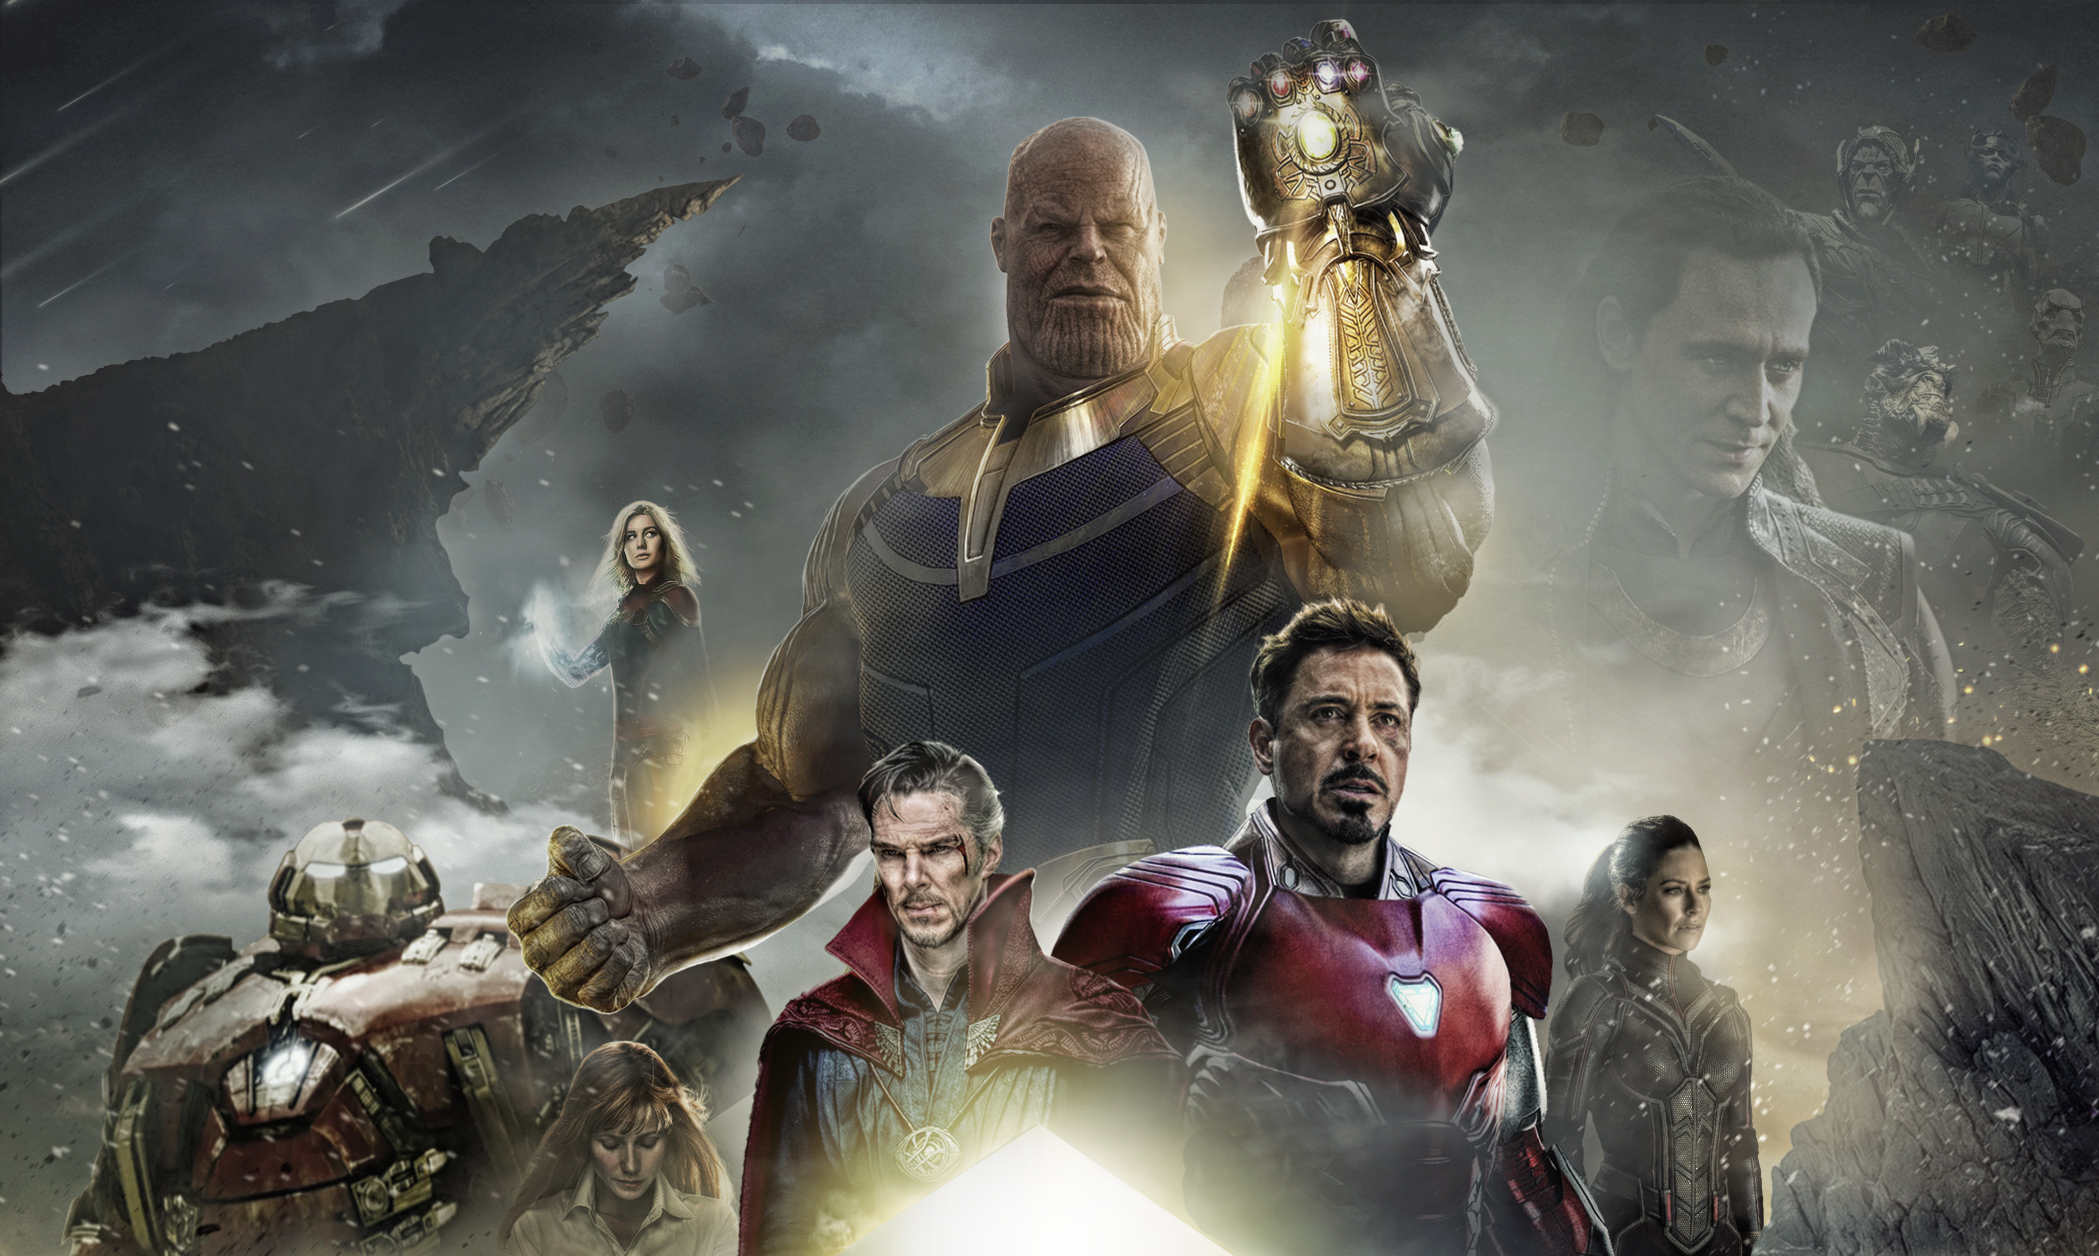 avengers infinity war 2018 poster fan made, hd movies, 4k wallpapers